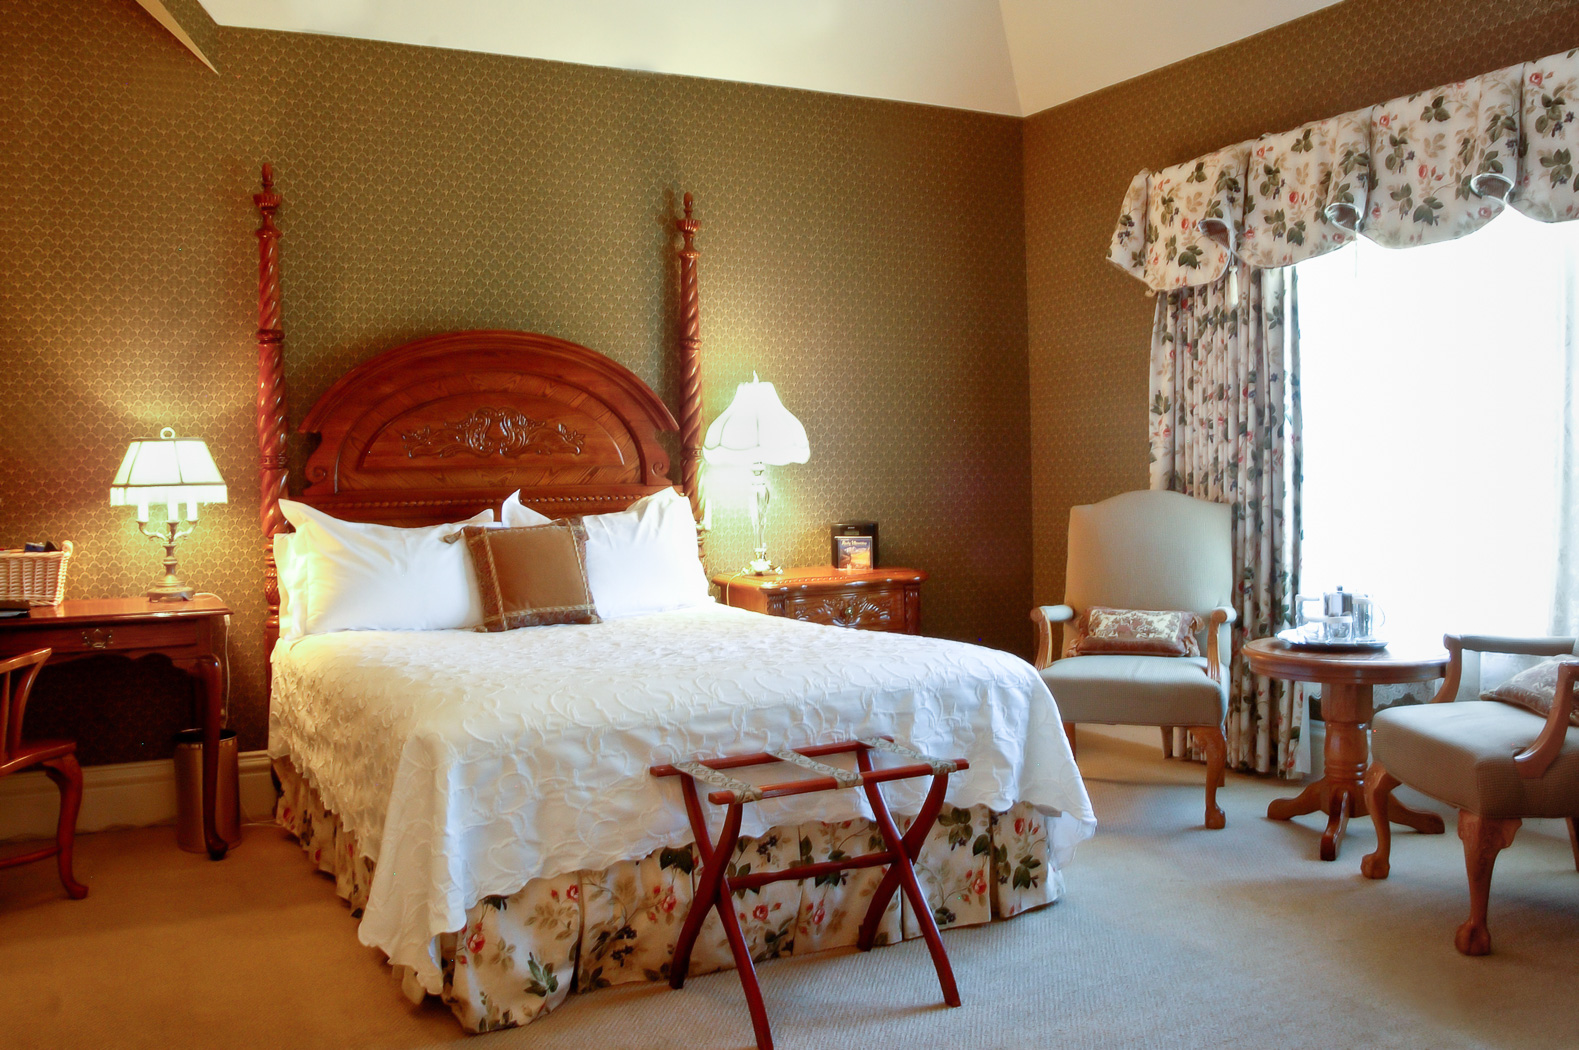 view of bedroom with white bed and floral accents, two nightstands with lamps, two lounge chairs with table